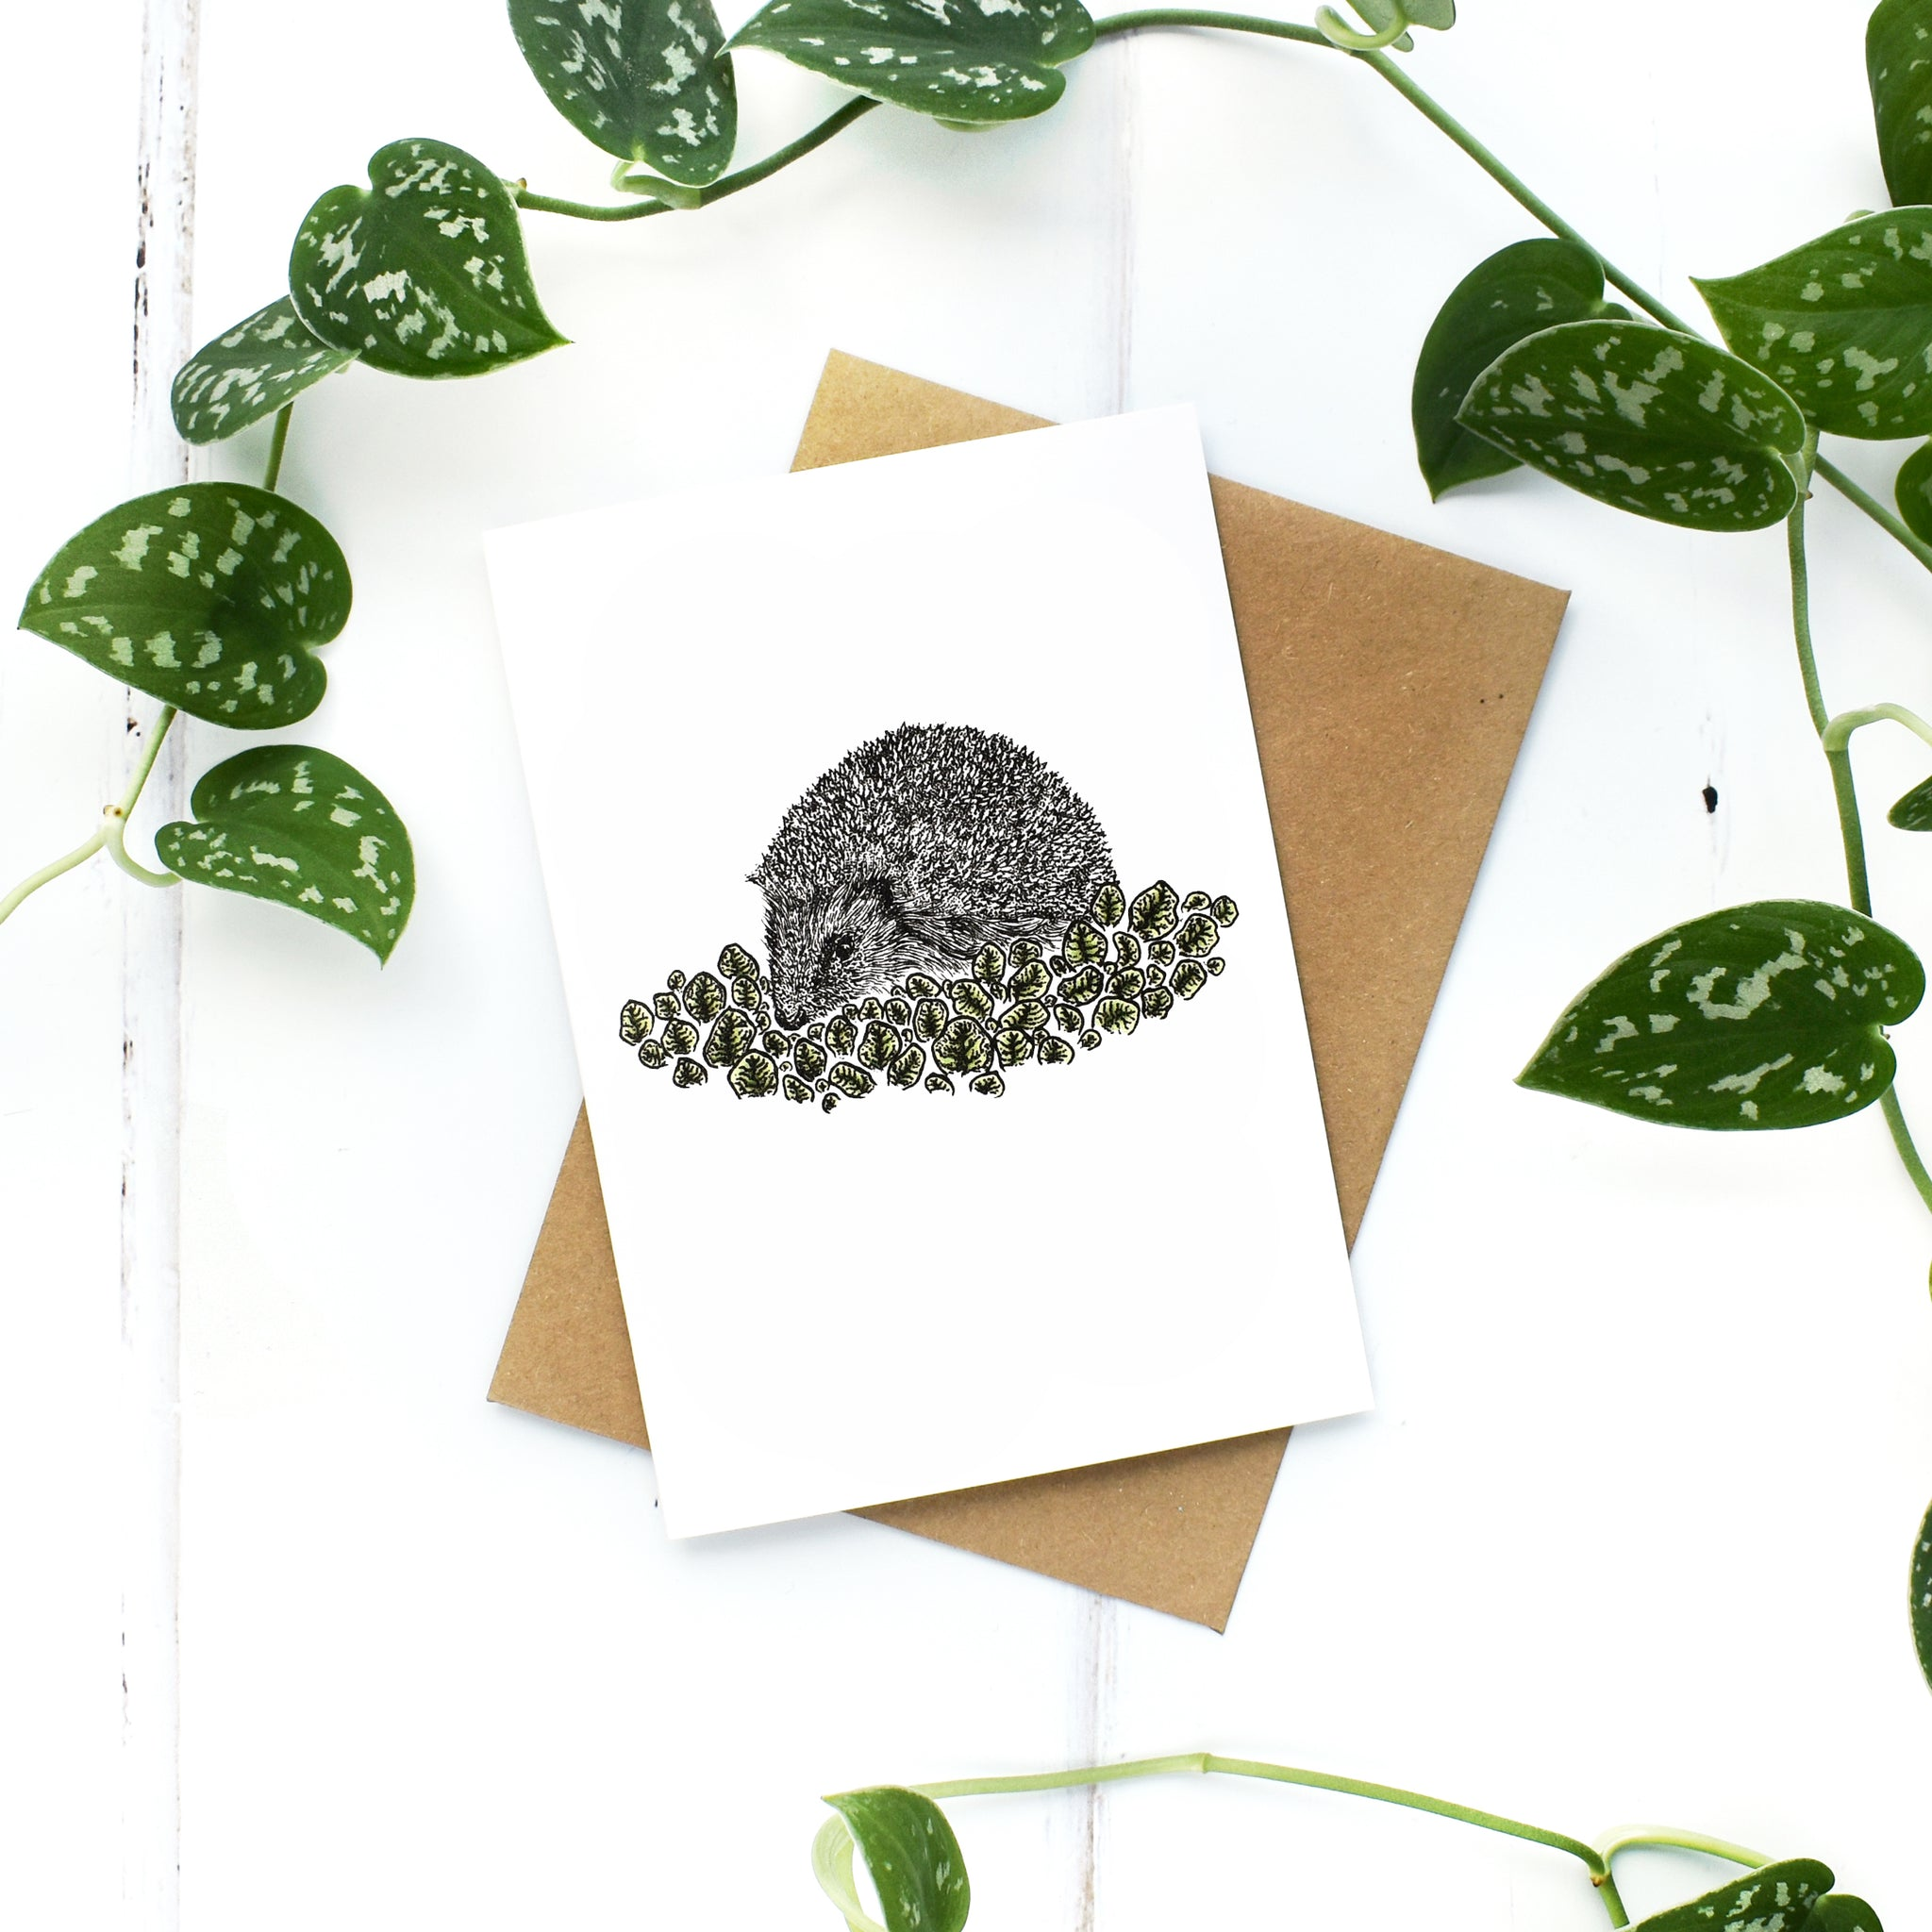 Hedgehog A6 Greeting Card, Blank Inside